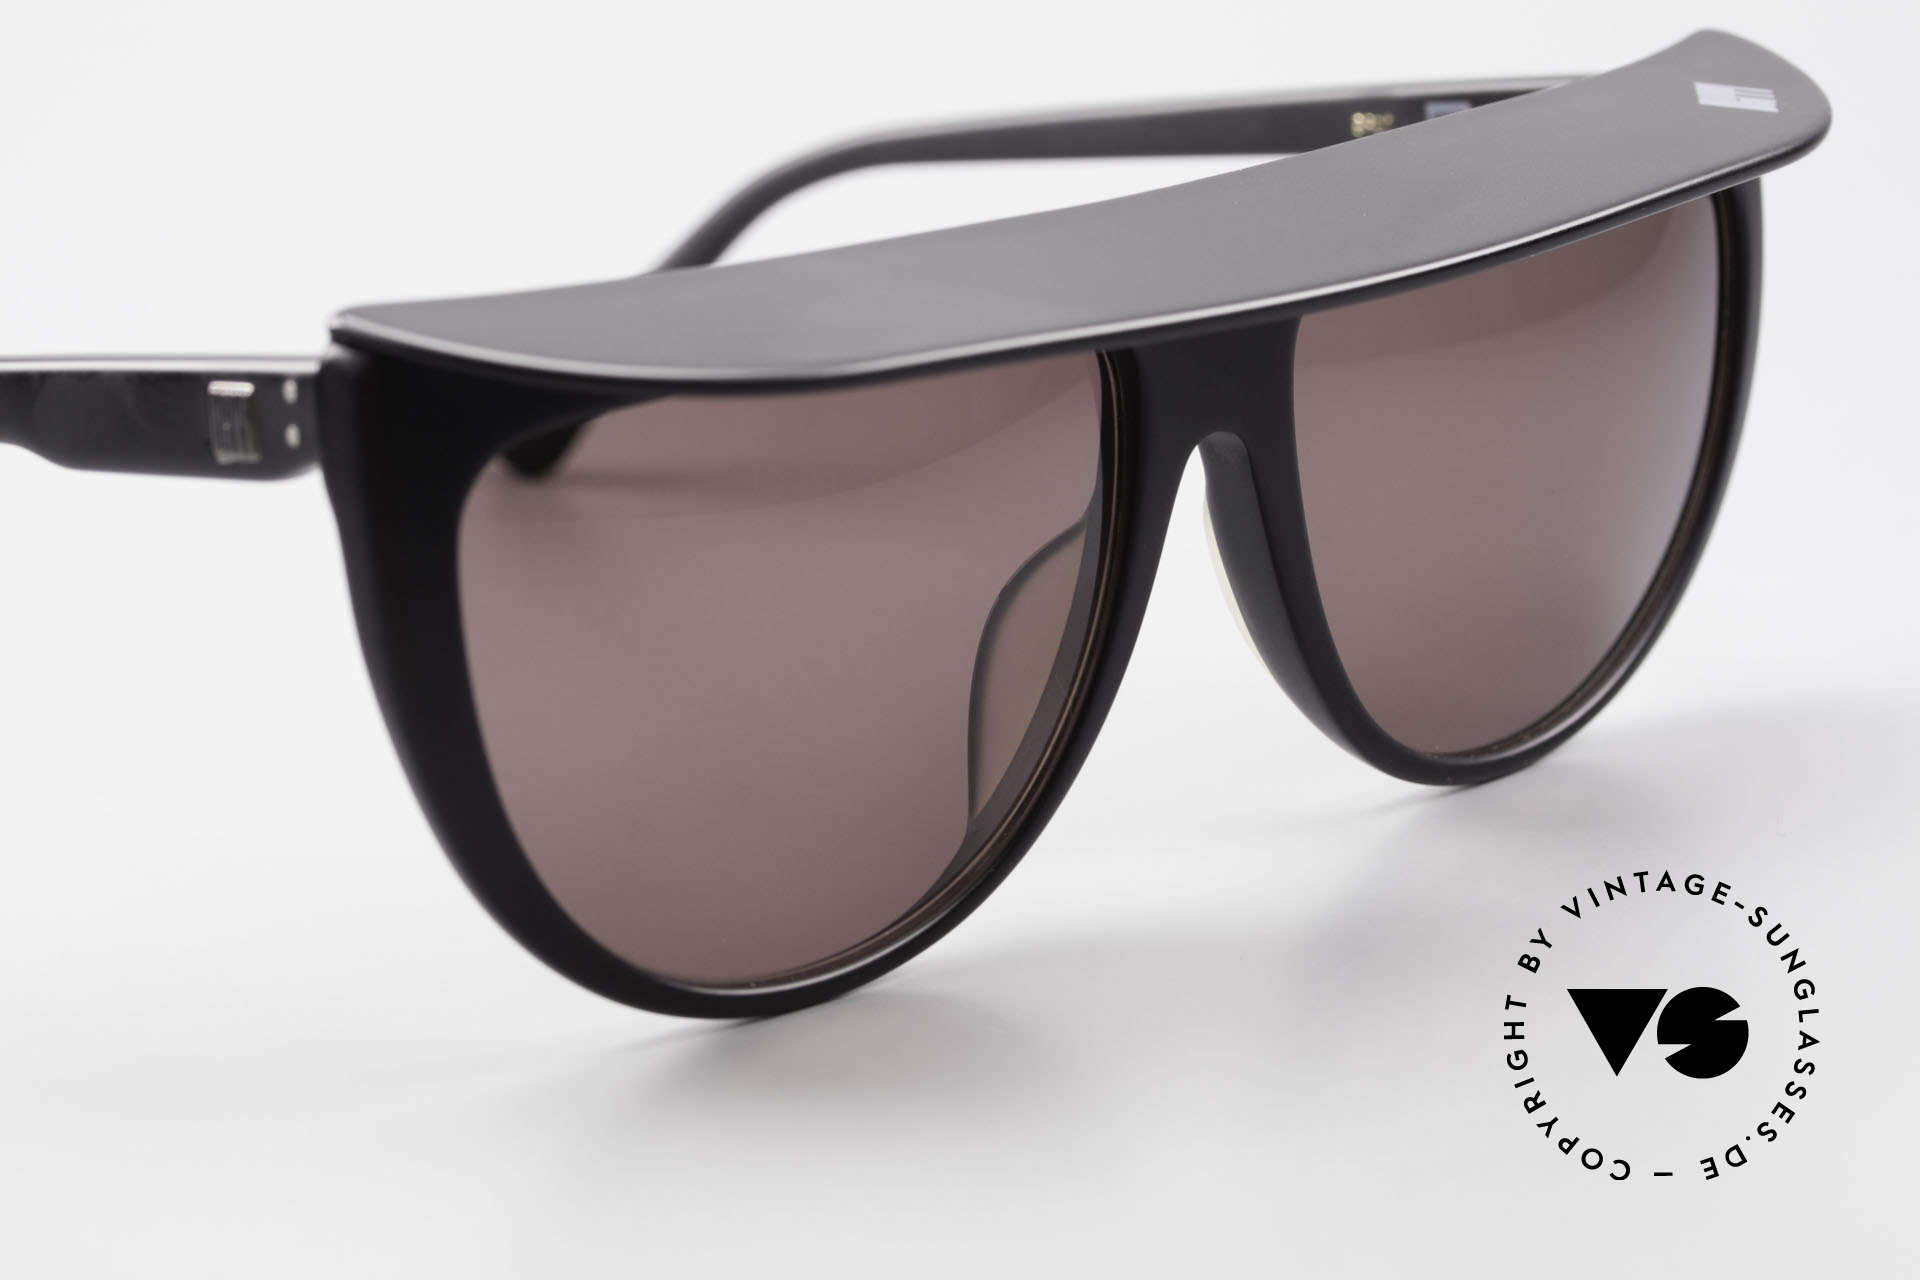 Ugppi 9801 Marquee Sunglasses 90s Japan, the frame could be glazed with optical lenses as well, Made for Men and Women